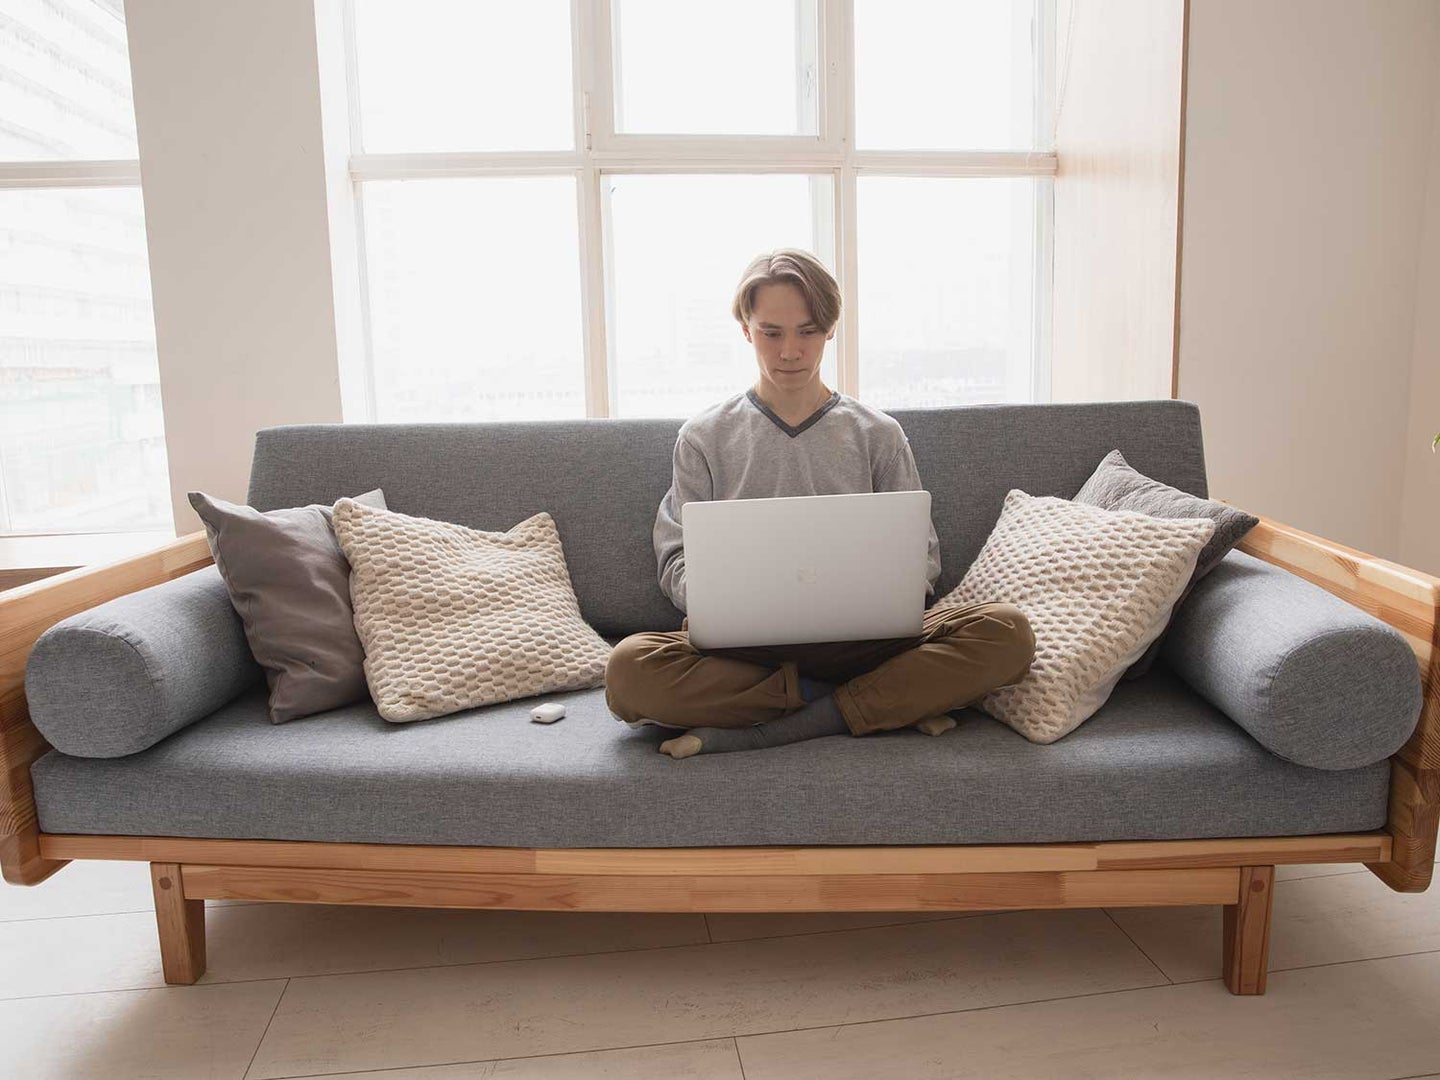 Man sitting on couch with computer.